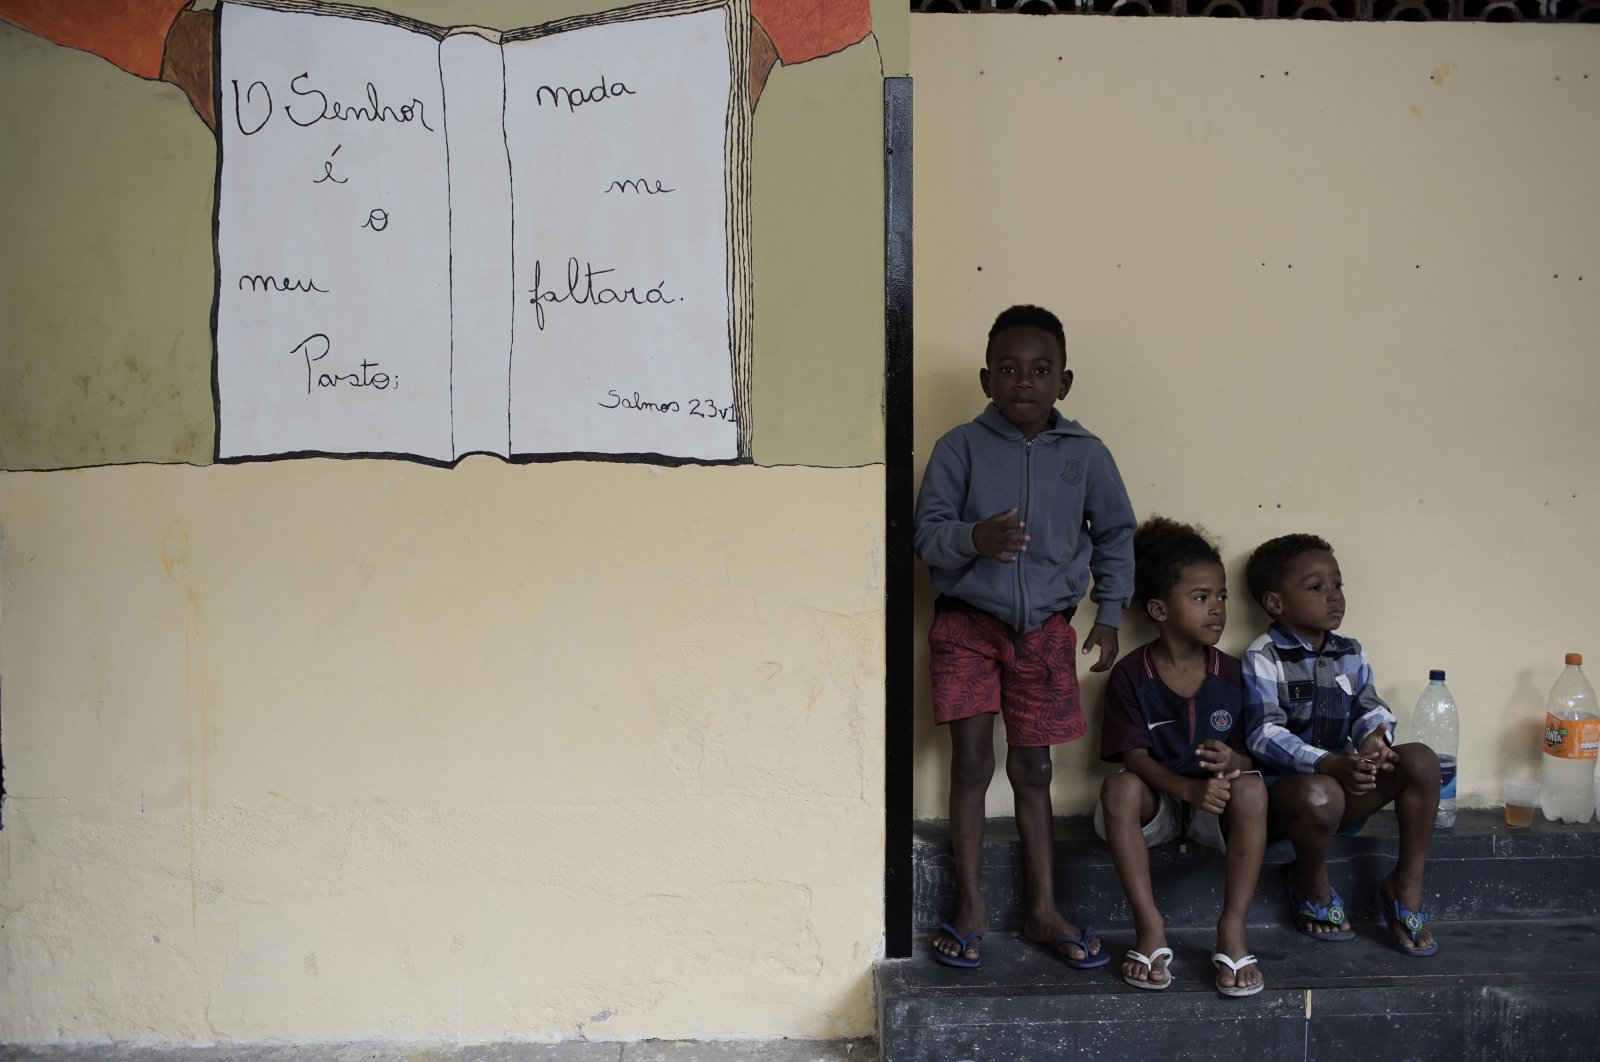 Children wait as their parents move their belongings from a house they occupied before being evicted amid the coronavirus pandemic in Rio de Janeiro, Brazil, Sept.15, 2020. (AP Photo)